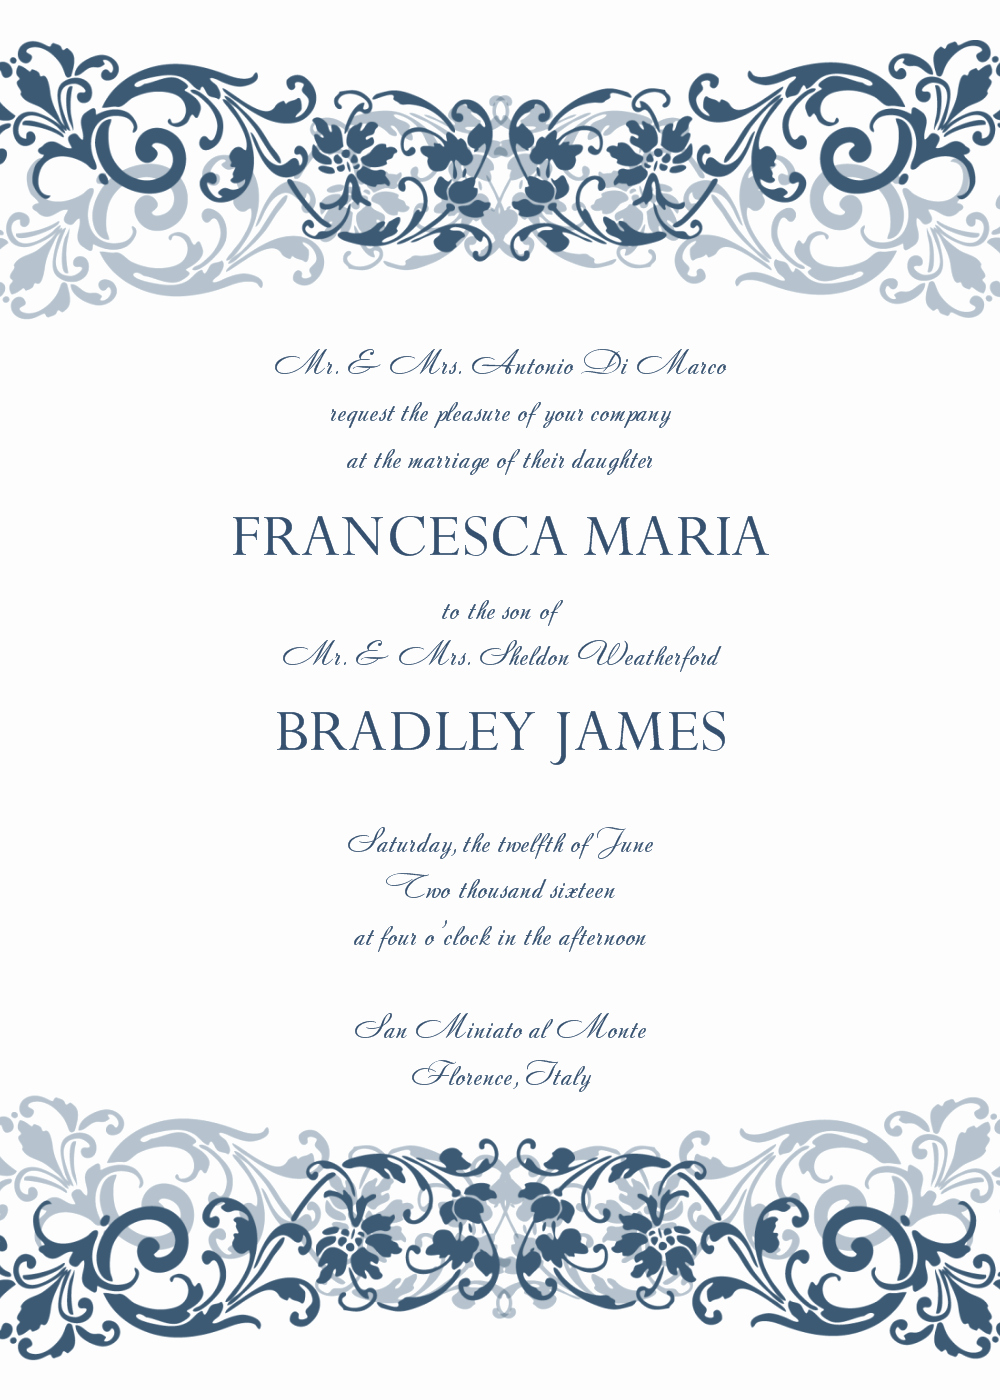 Wedding Invitation Template Word Unique 30 Free Wedding Invitations Templates